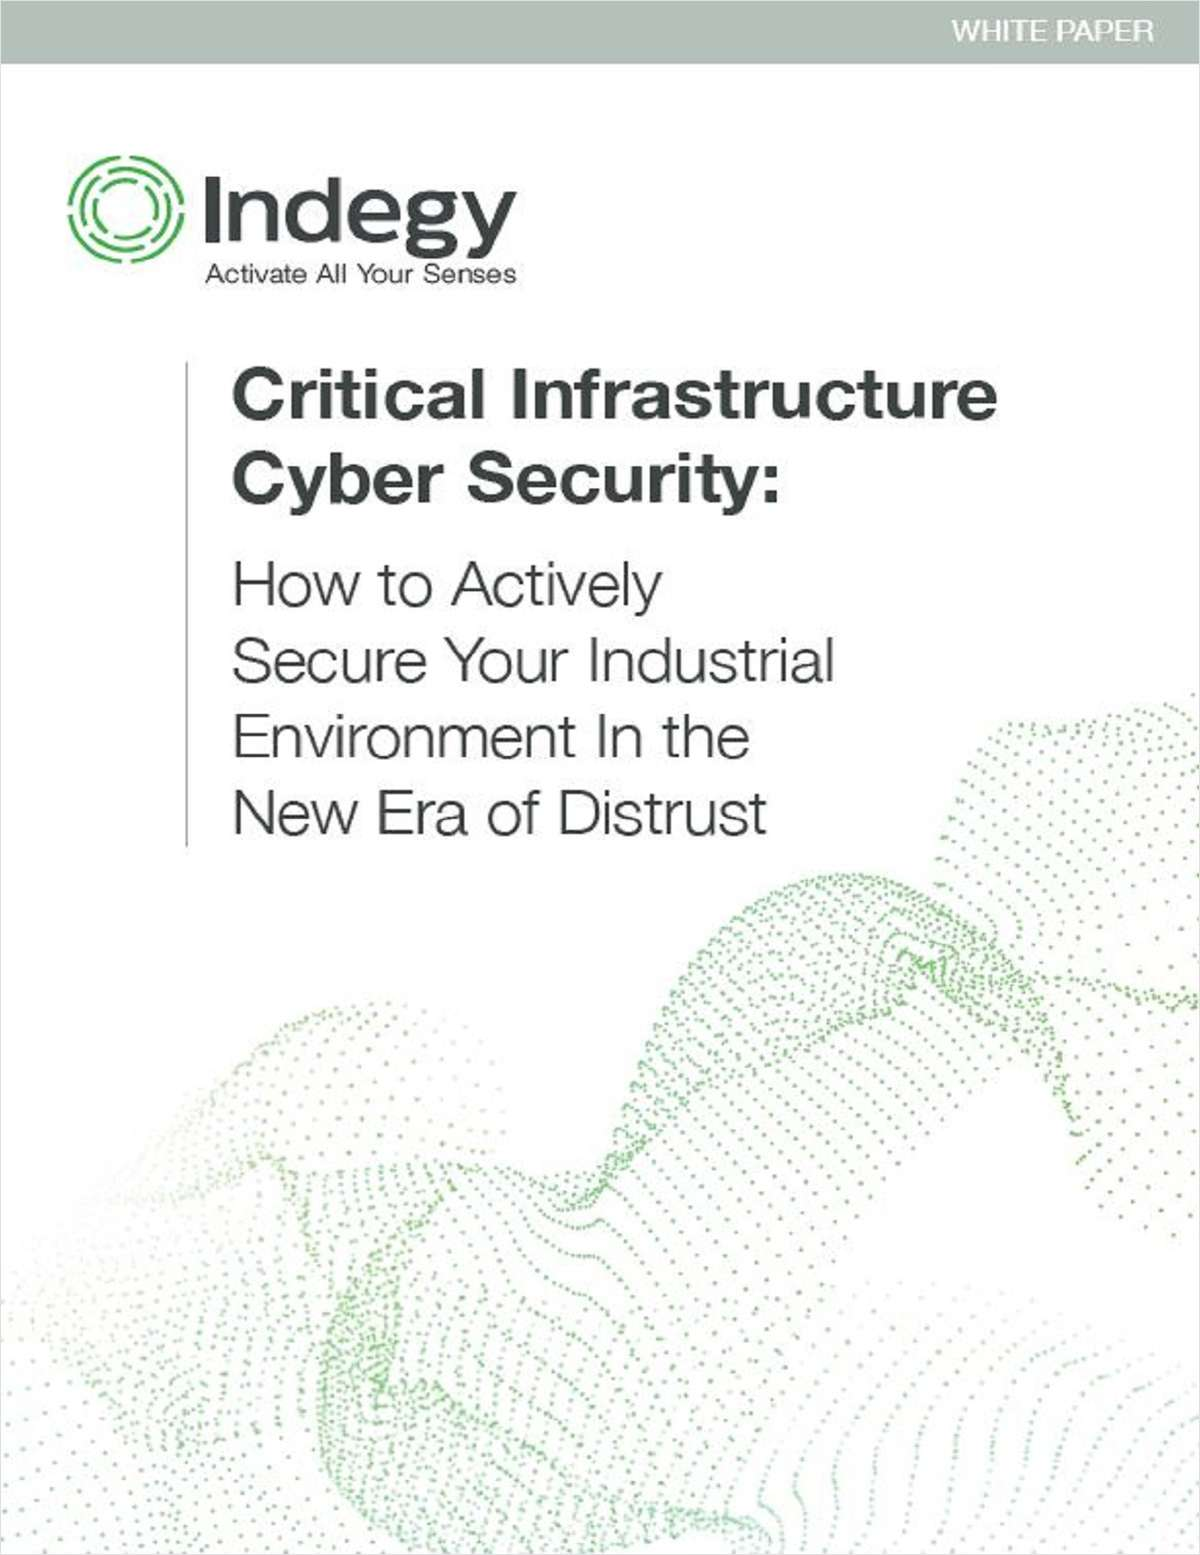 Critical Infrastructure Cyber Security: